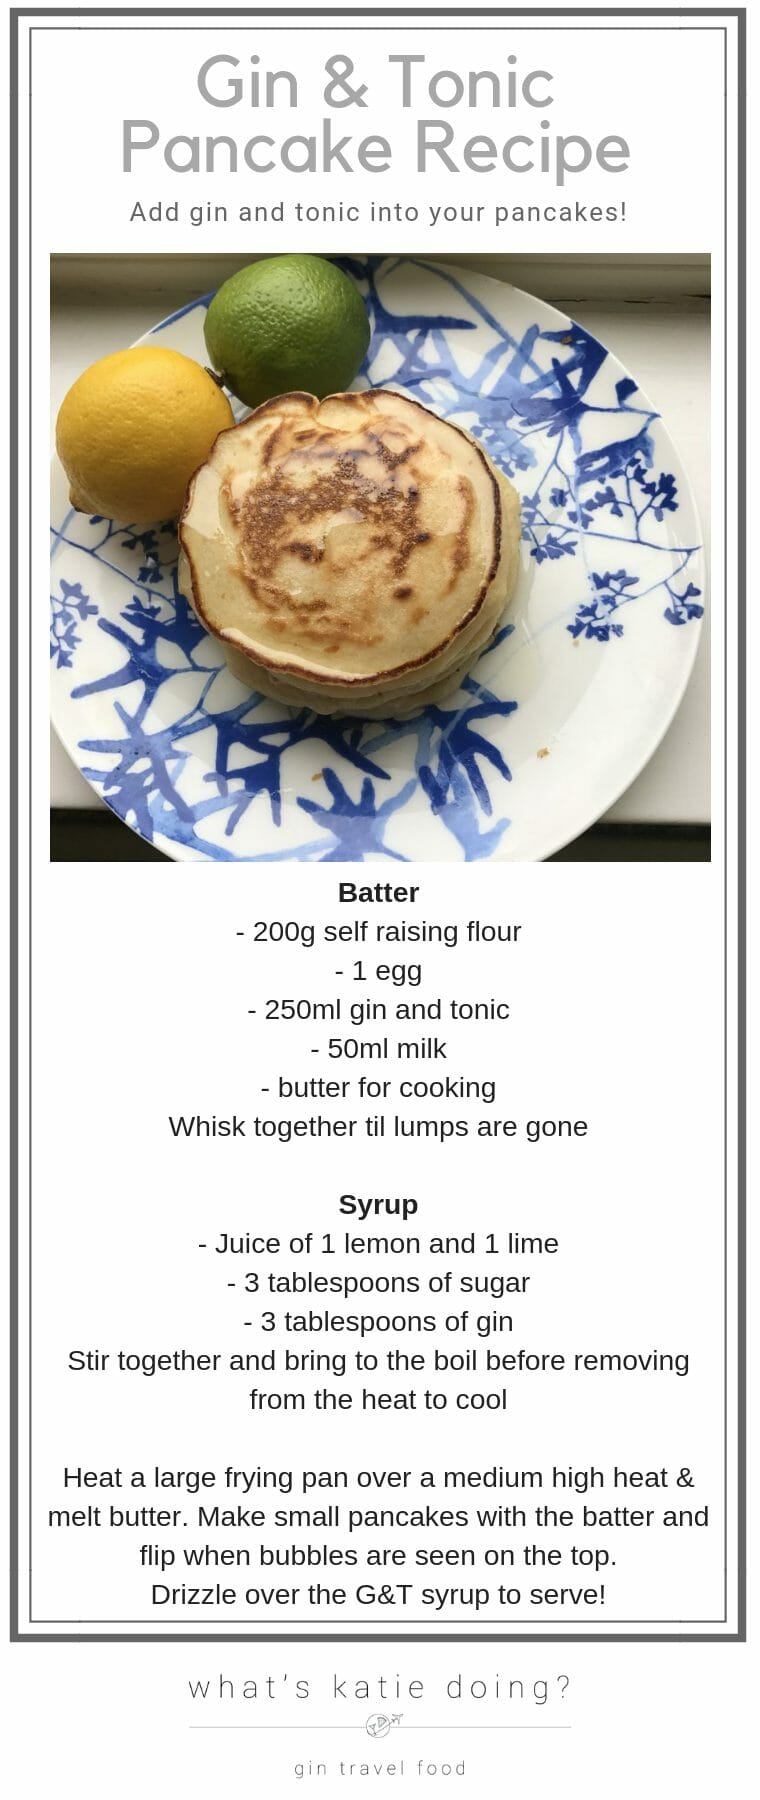 Gin and Tonic Pancake Recipe on What's Katie Doing? blog